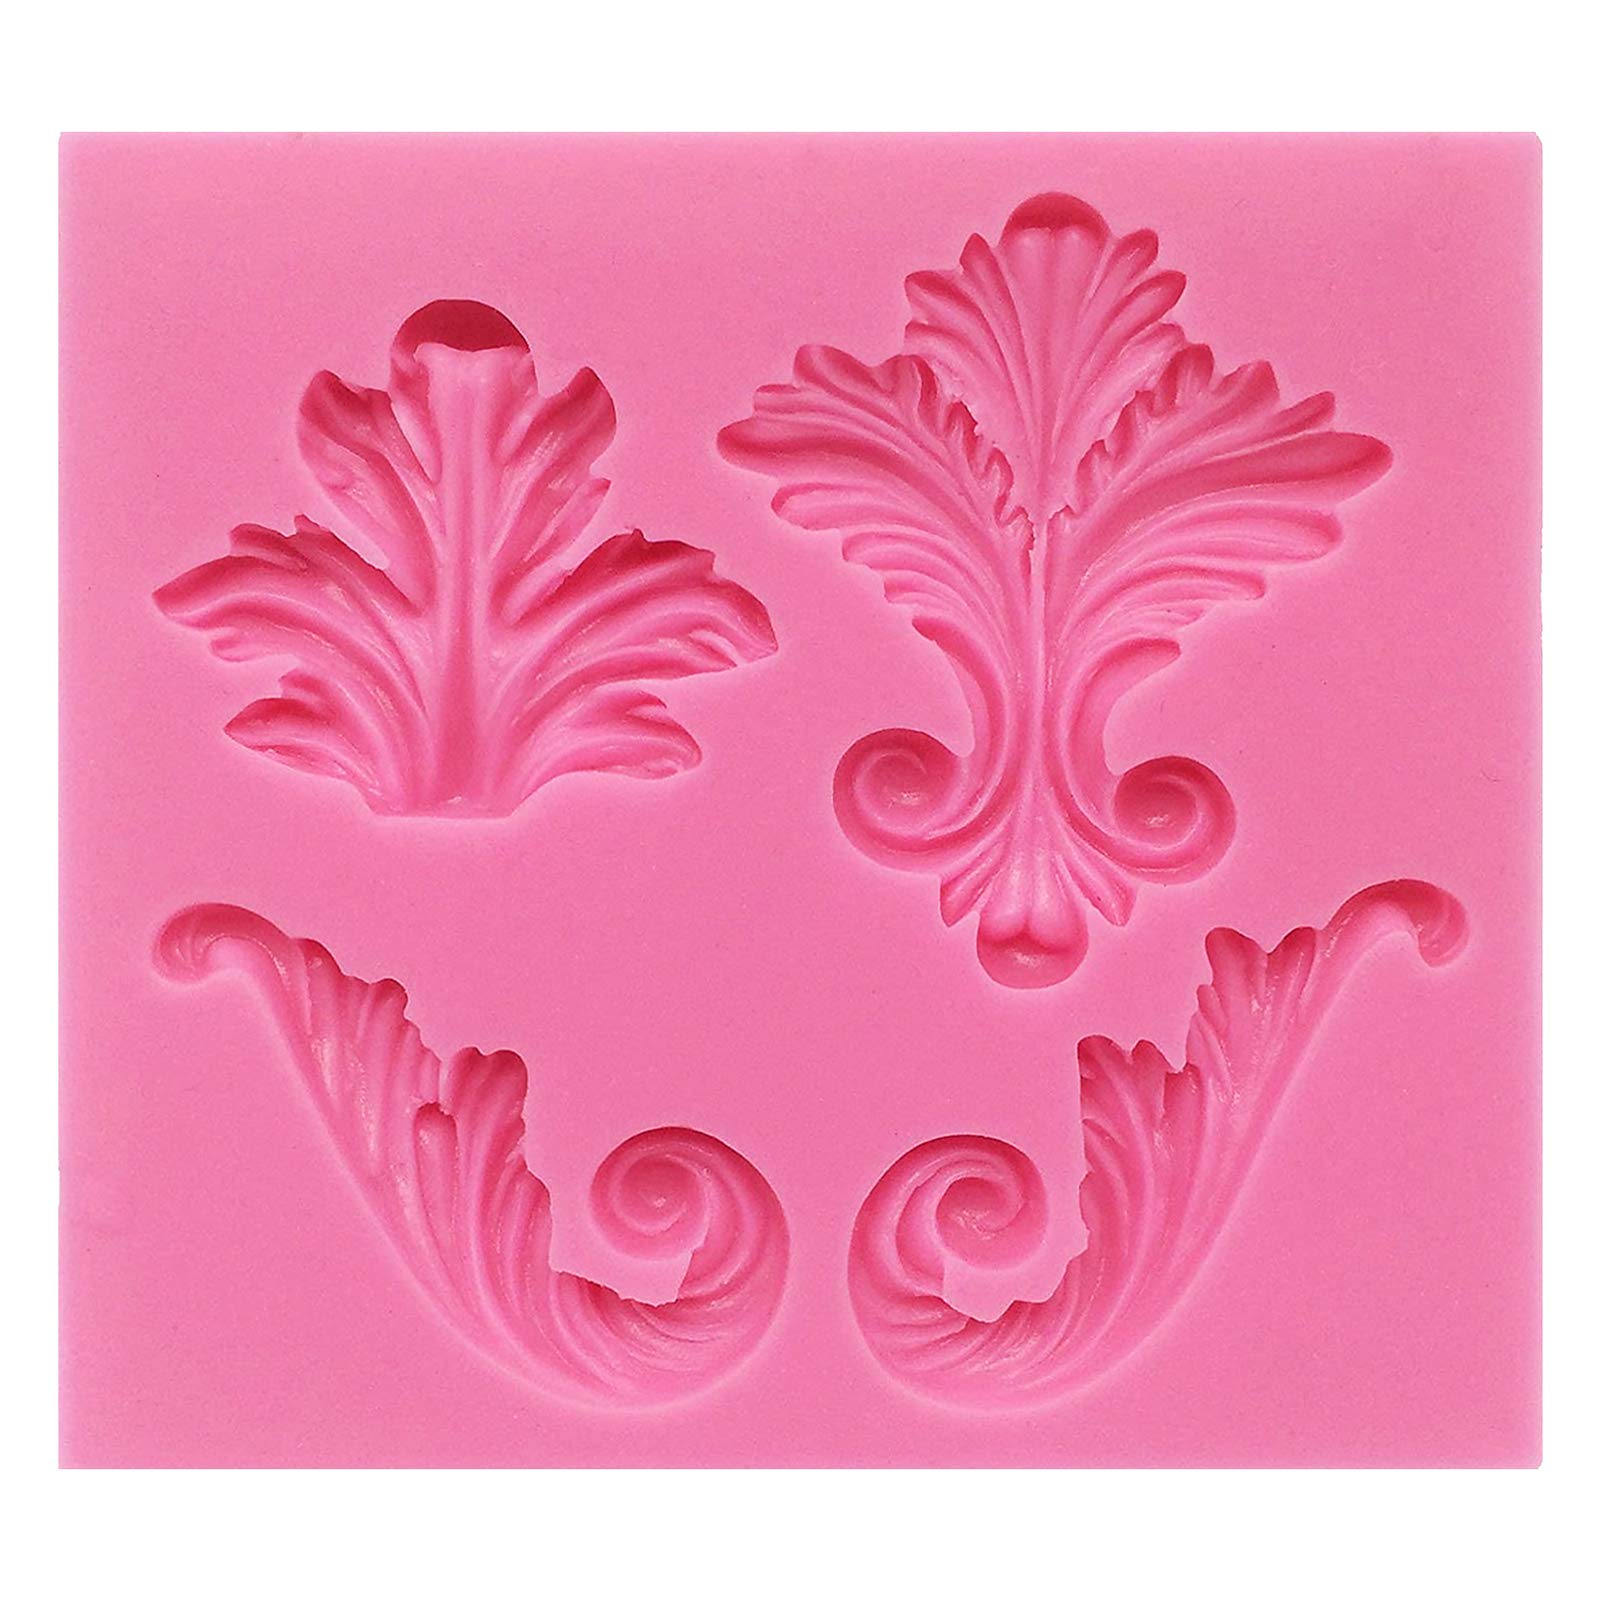 Chocolate Soap Making Funshowcase 4 Cavities Feather Pattern Silicone Cake Decorating Mold for Sugarcraft Fondant Resin Polymer Clay